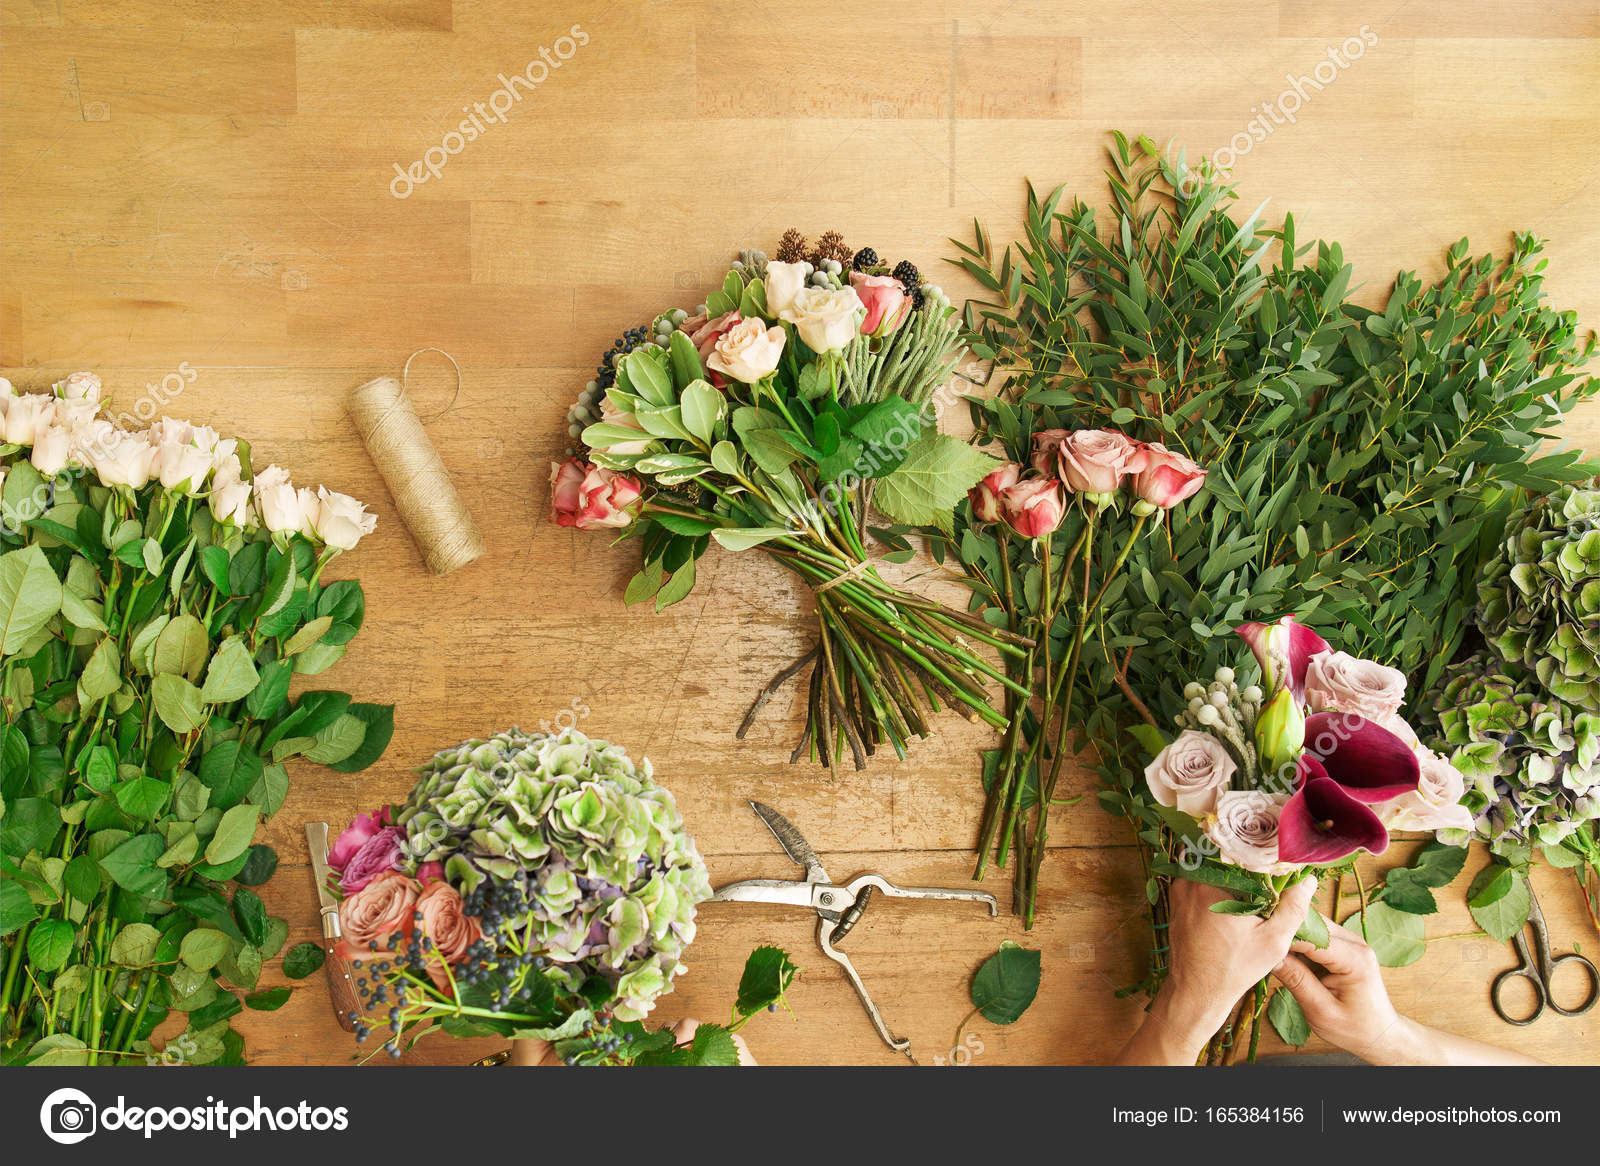 Florist In Flower Shop Delivery Make Rose Bouquet Table Top View